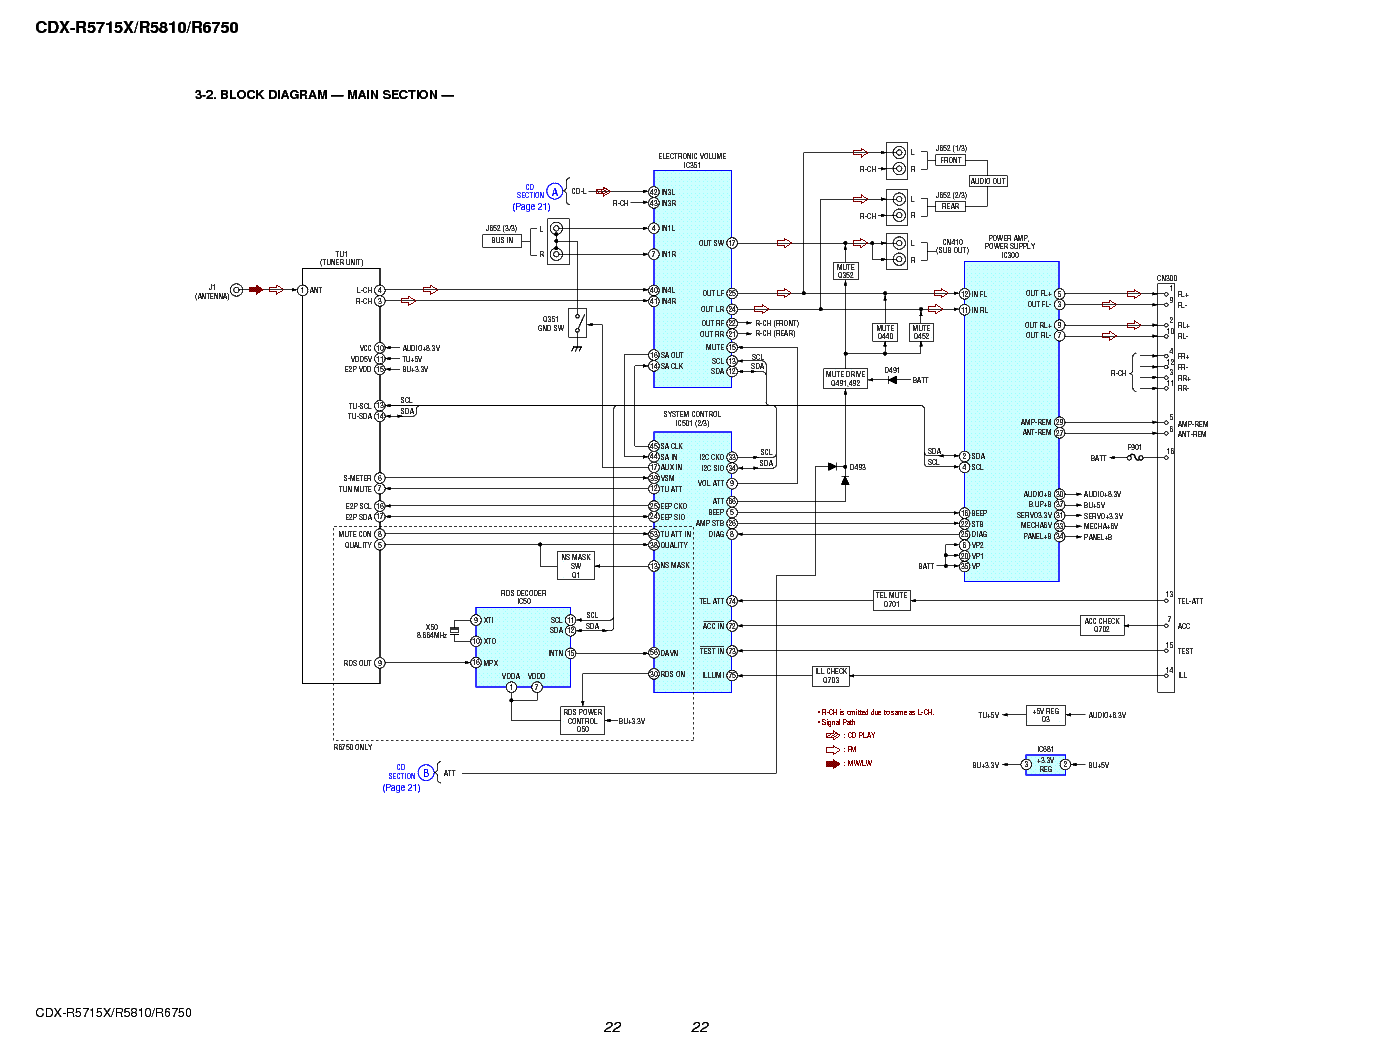 Sony Car Radio Schematics Wiring Library Cdx R5715pdf 1 Gt35u Diagram Gt56ui Wire U2022